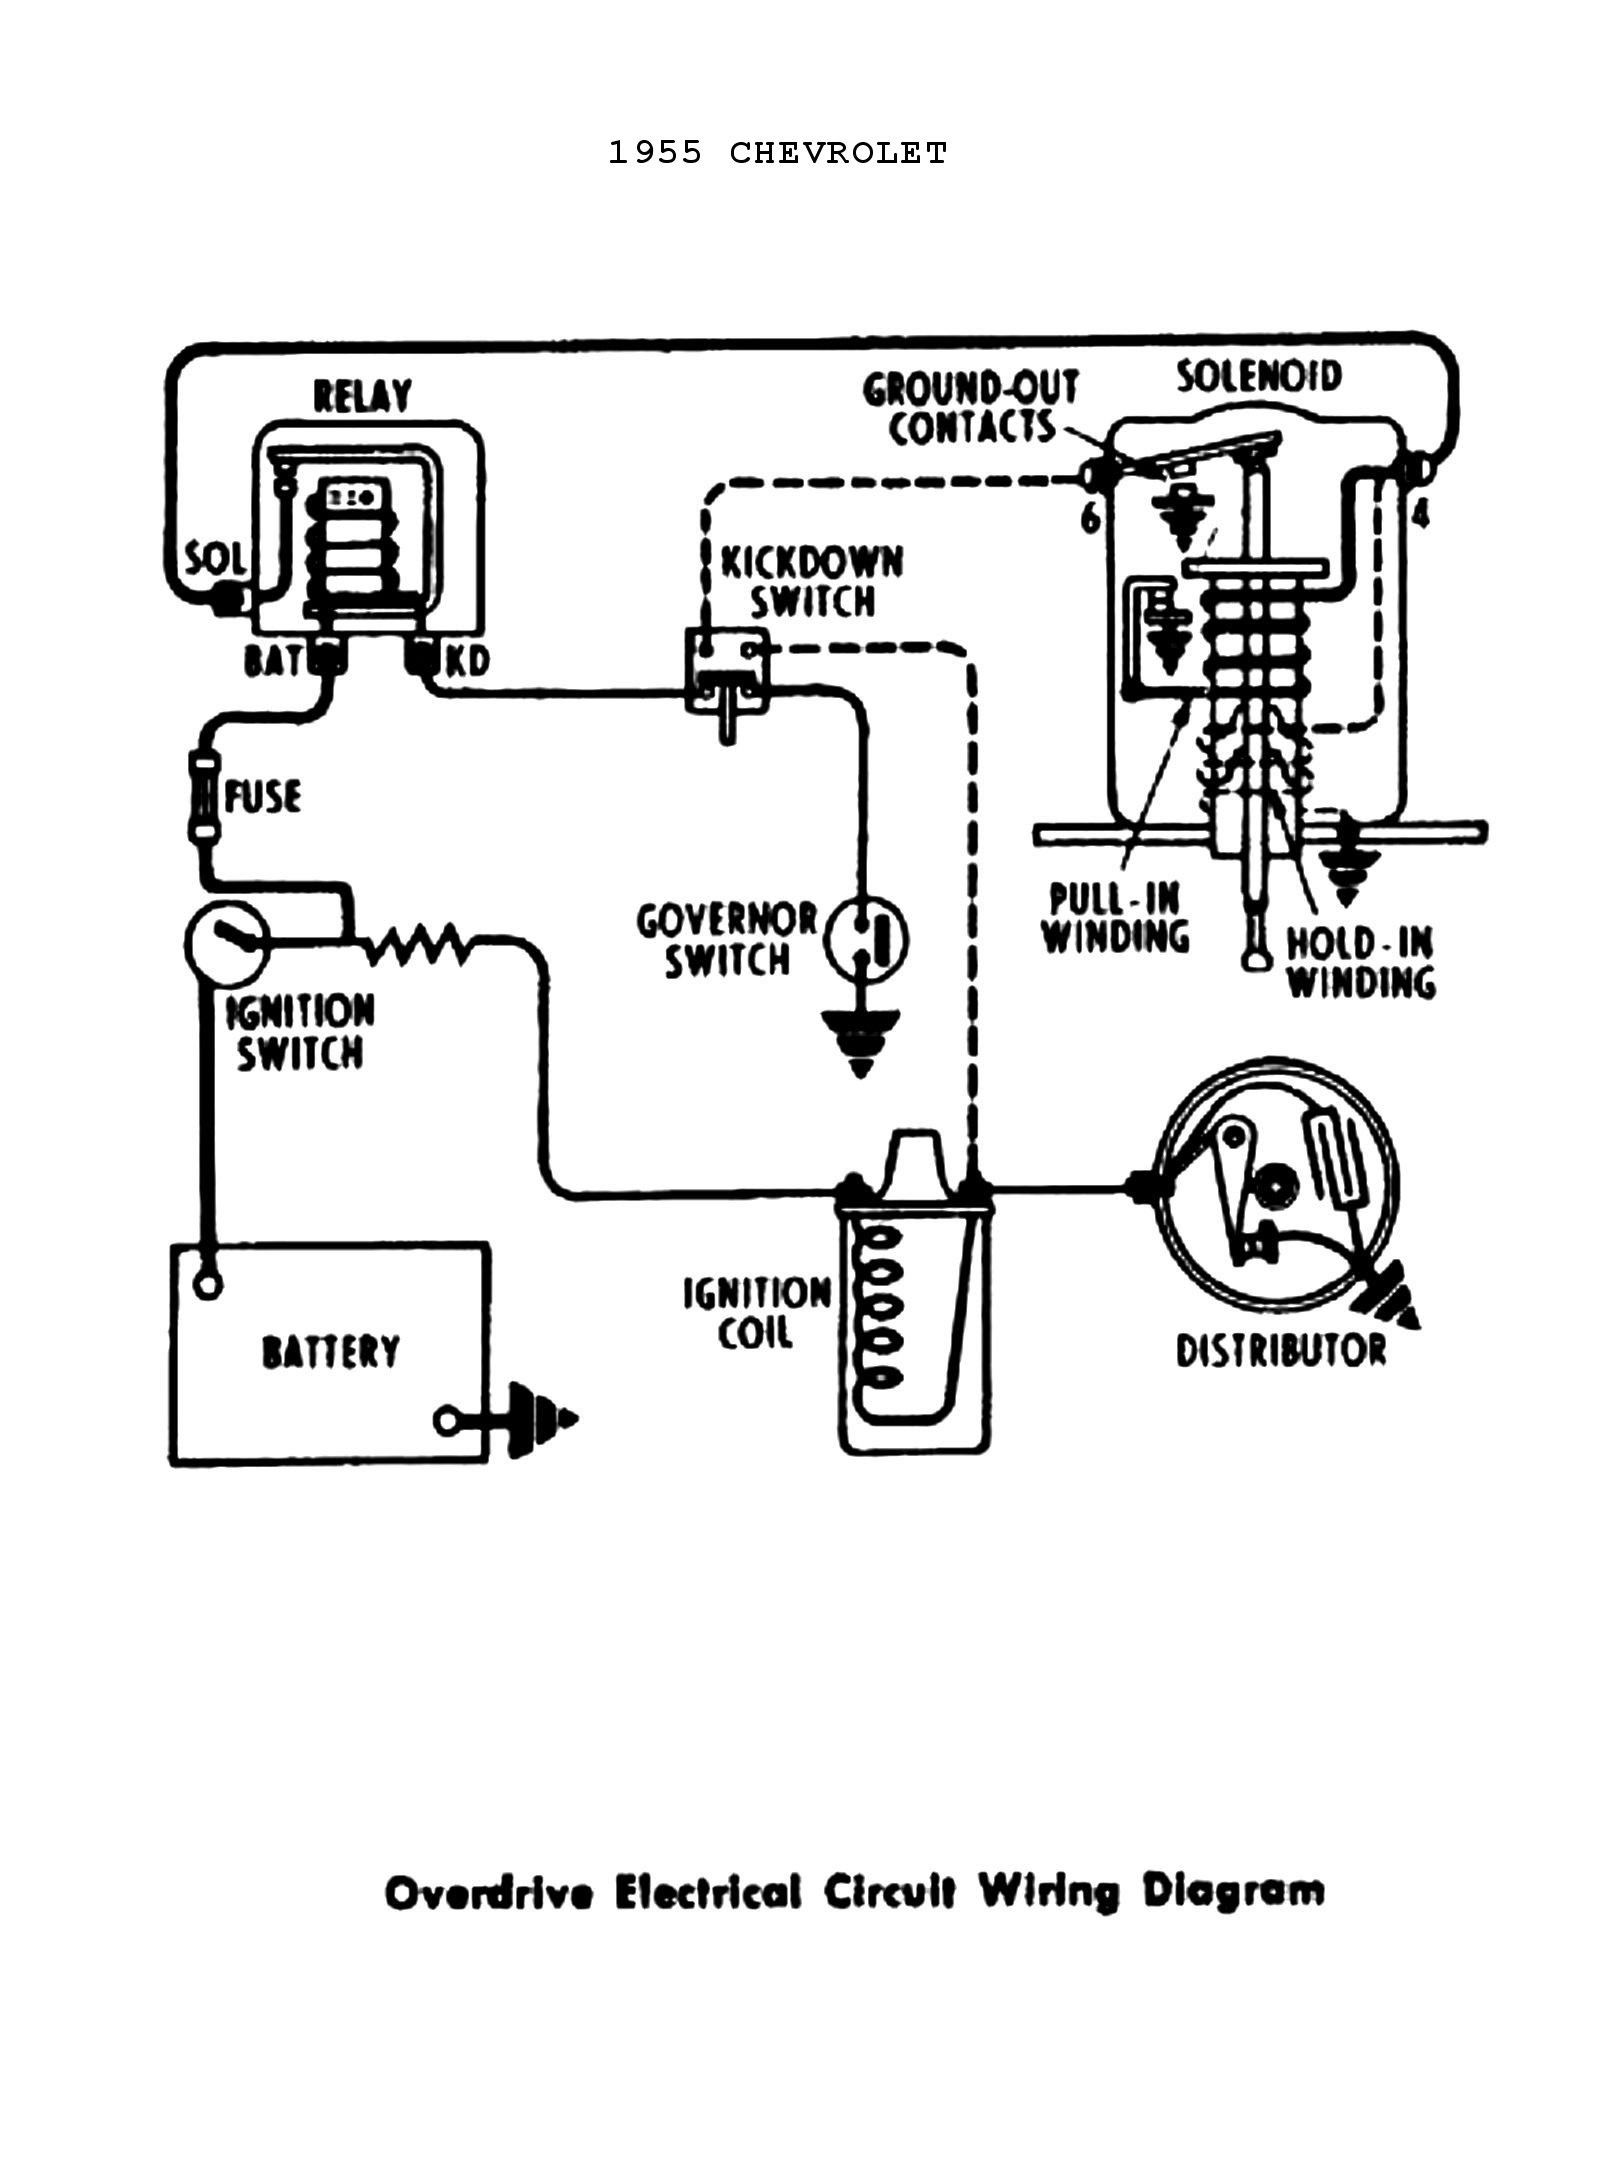 Distributor Wiring Diagram : distributor, wiring, diagram, Points, Condenser, Wiring, Unique, Ignition, Coil,, System,